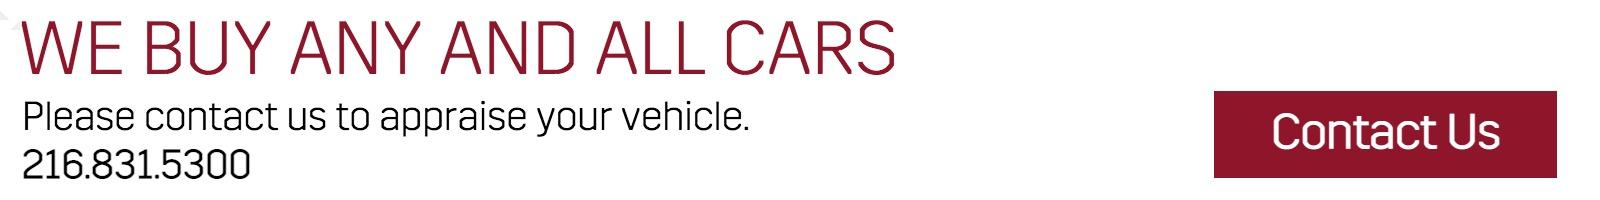 We Buy Cars at Crestmont Cadillac